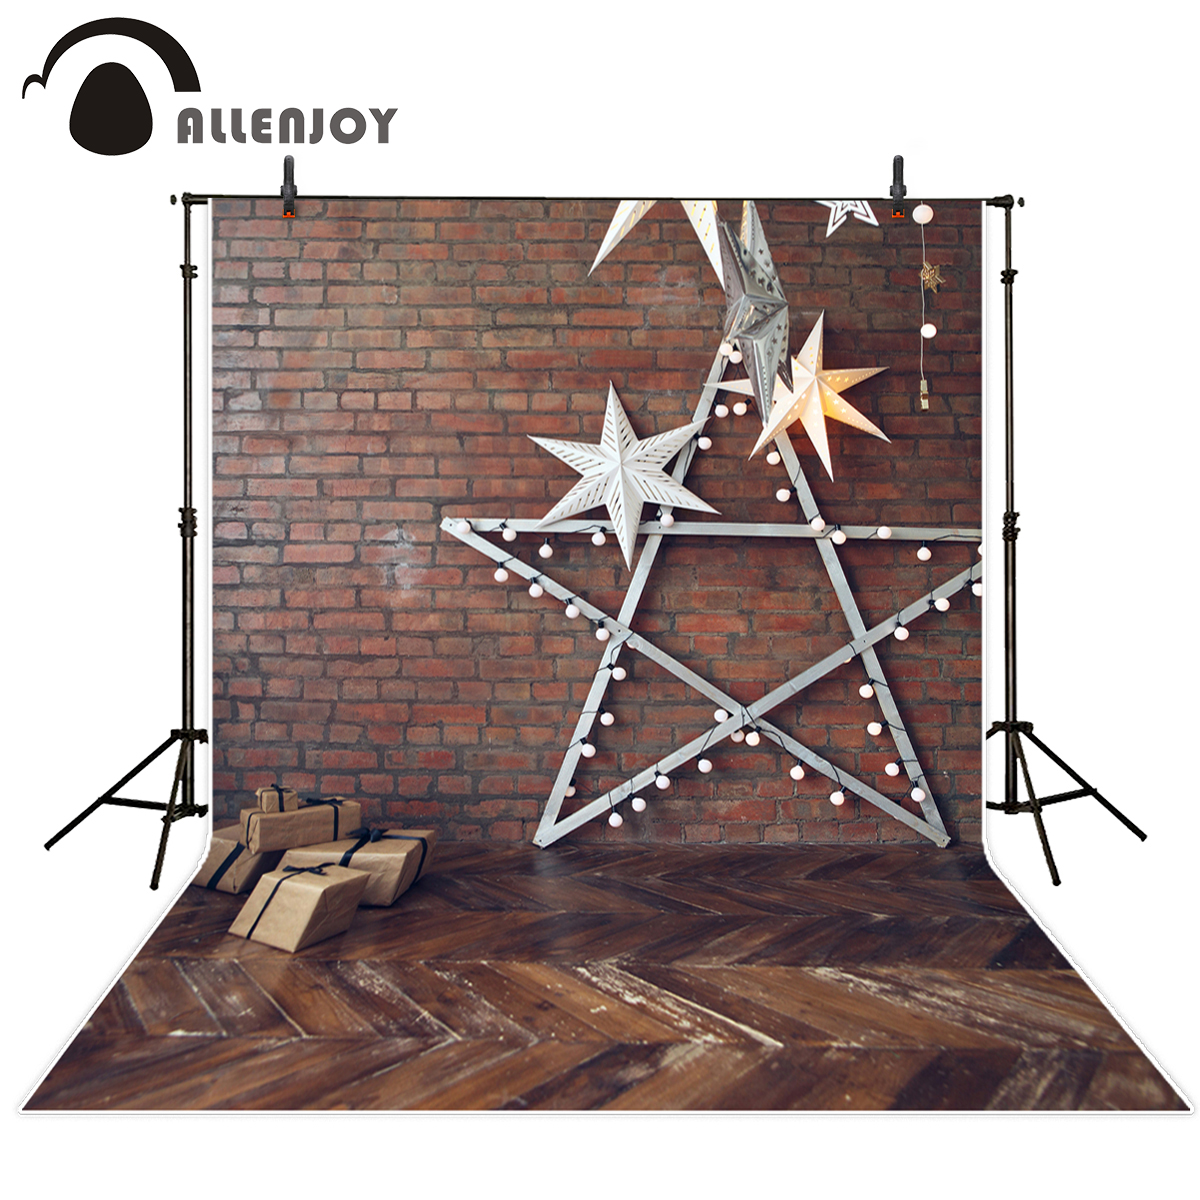 Allenjoy photography backdrops brick wall snowflake star wood floor decor backgrounds for photo studio photo background vinyl white brick wall background wood floor photography backdrops vinyl digital cloth for photo studio backgrounds props s 1112